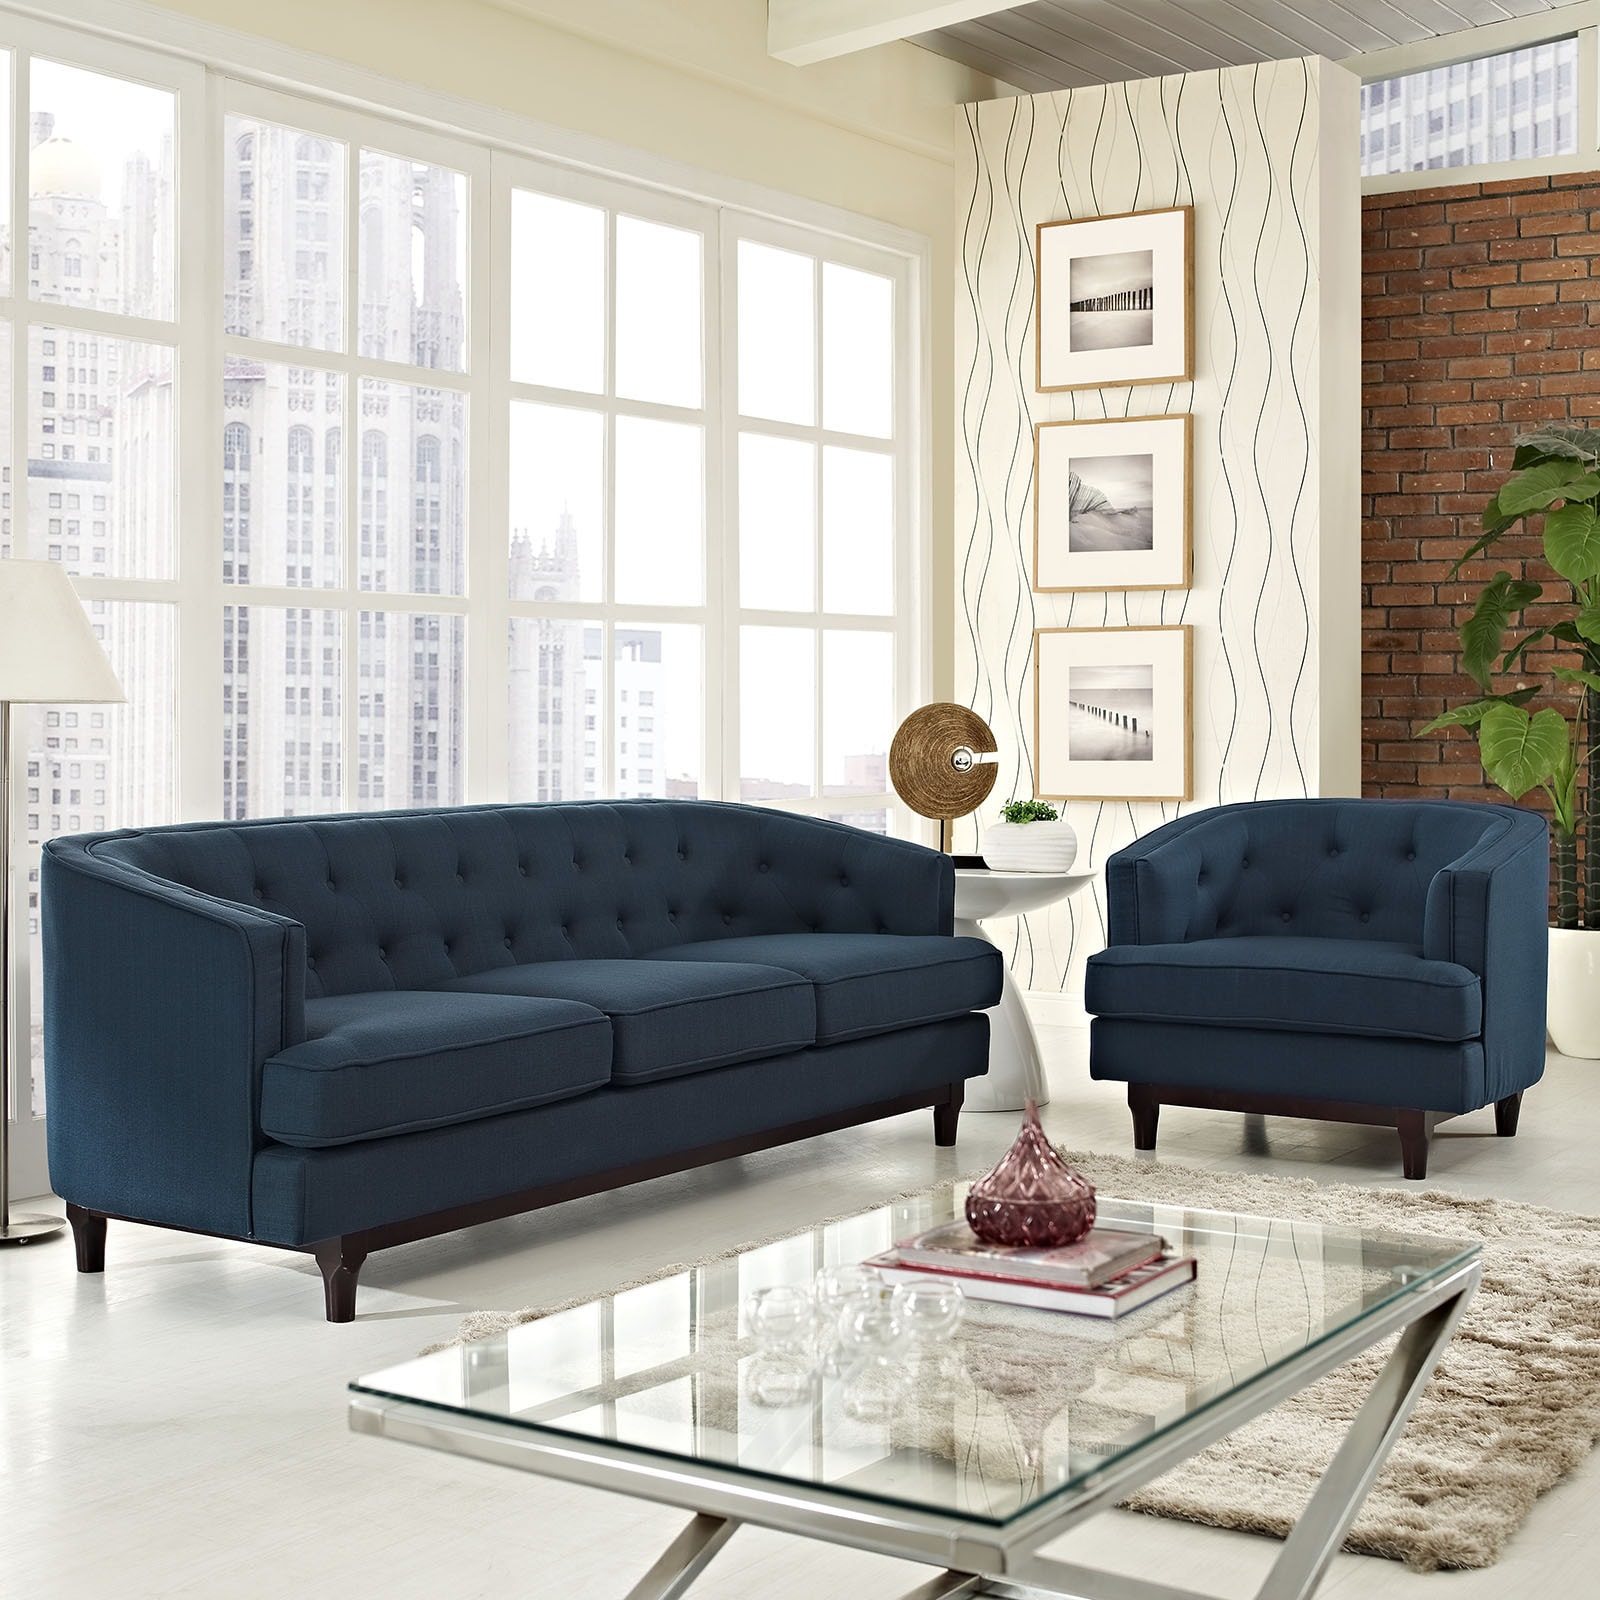 Strick Bolton Allington Button Tufted Sofa And Chair Set